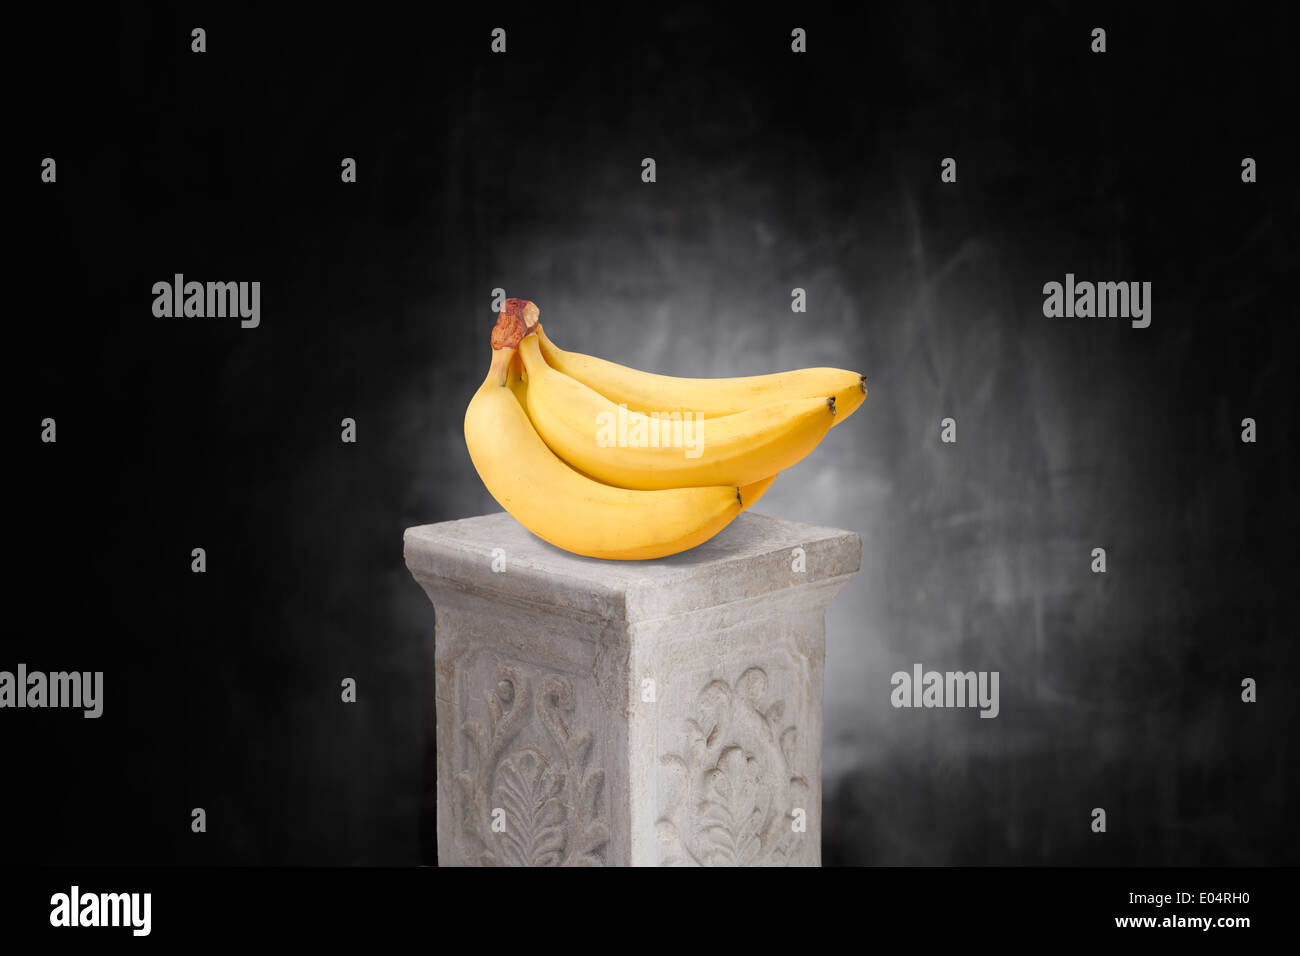 Bunch of yellow bananas on a pedestal. - Stock Image